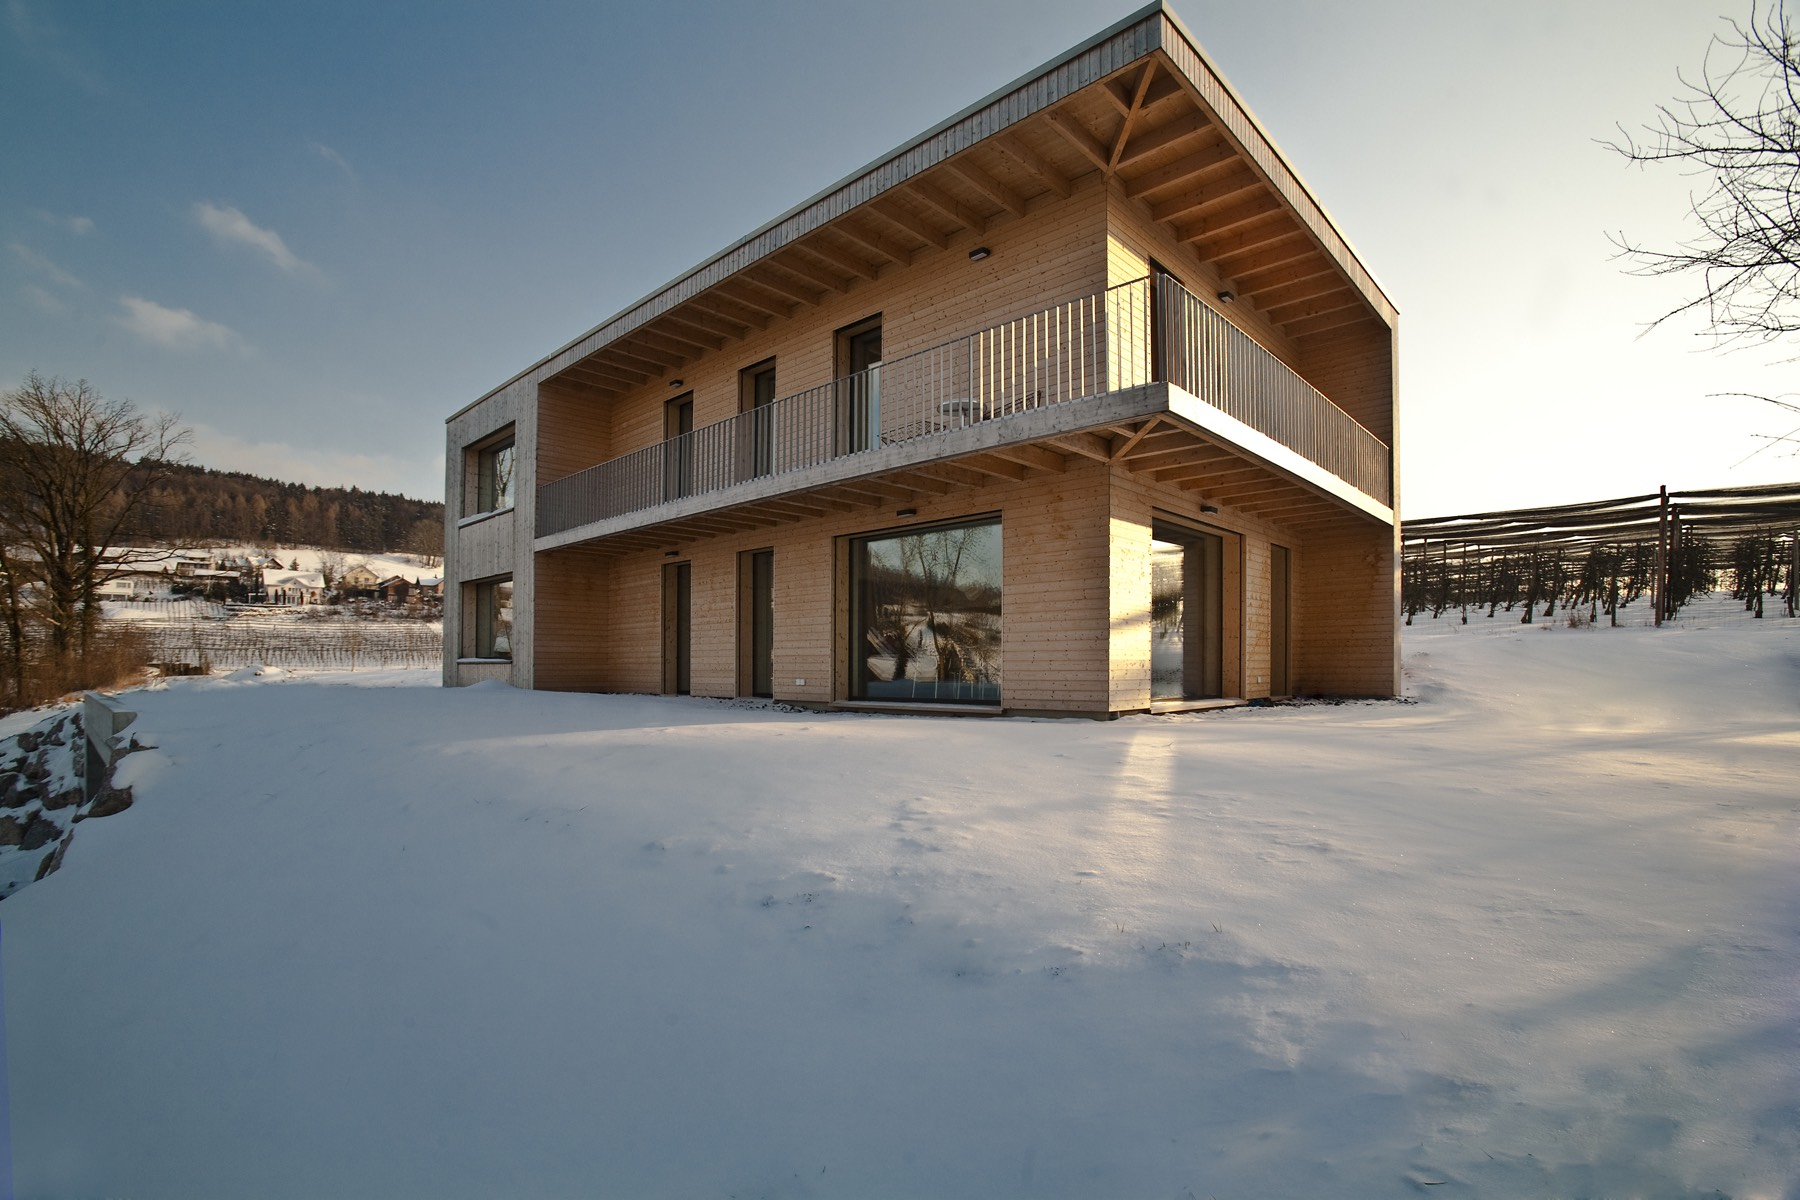 01_EFH_Meier_Winter.jpg